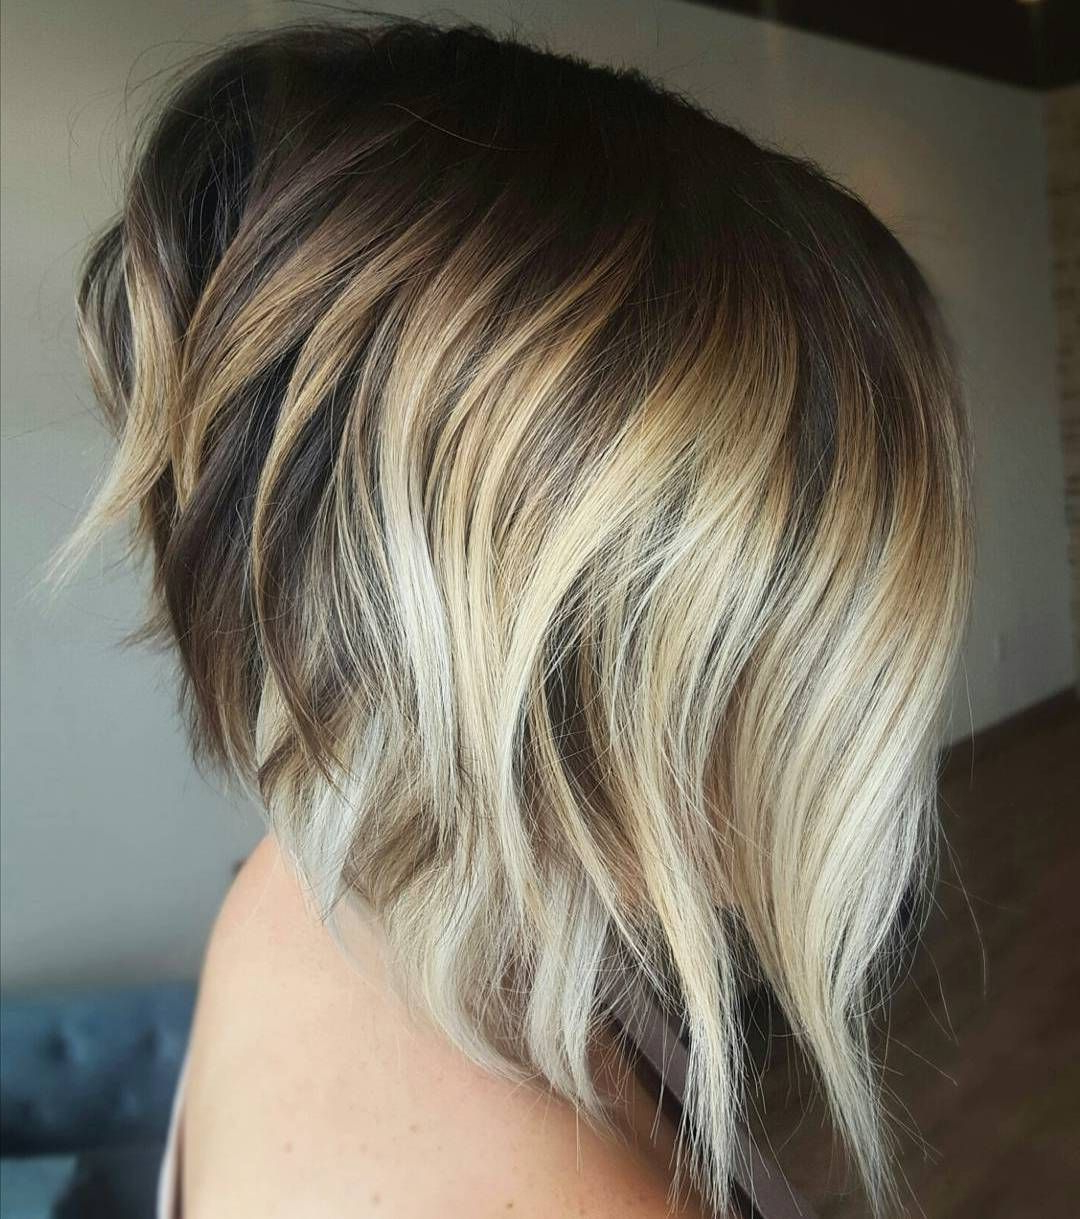 Pin On Hairstyles With Regard To Balayaged Choppy Bob Haircuts (Gallery 19 of 20)